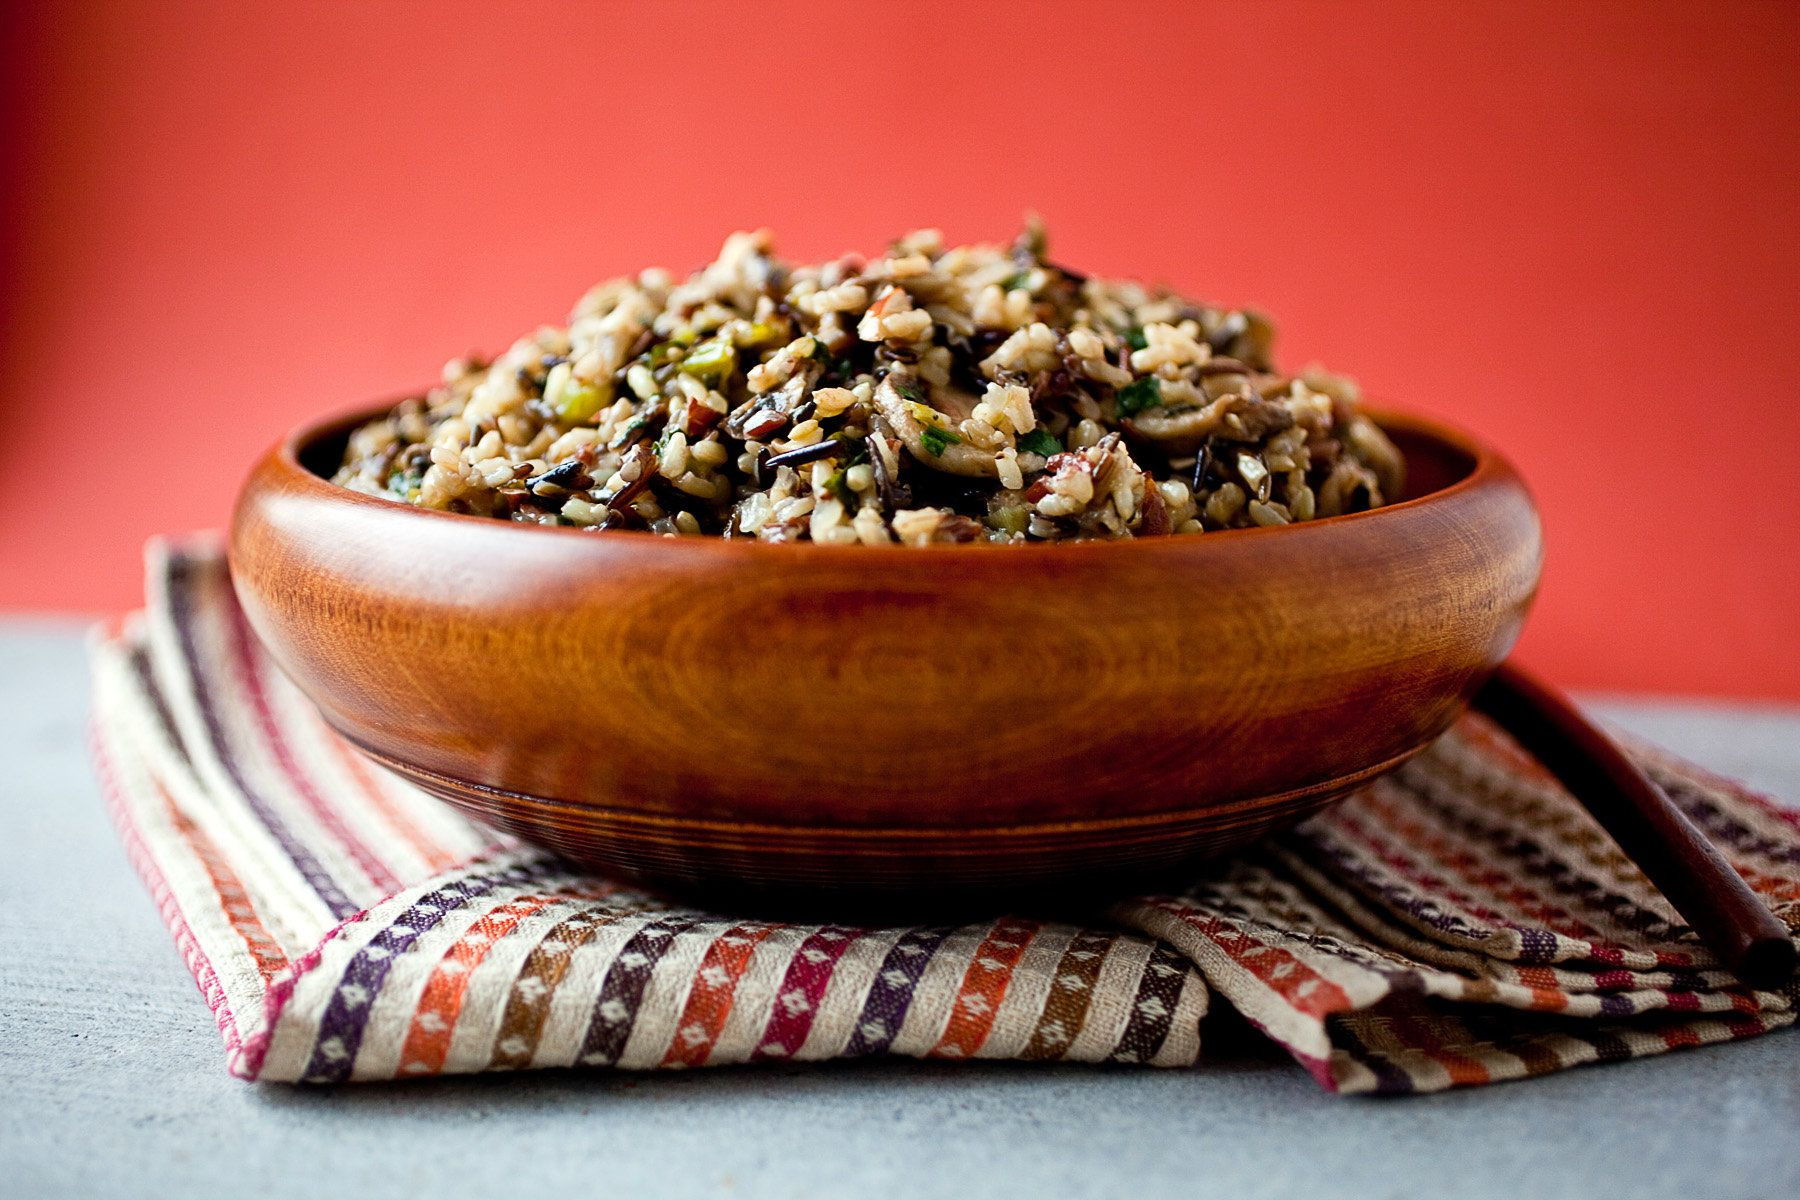 NYT Cooking: Wild Rice, Almond and Mushroom Stuffing